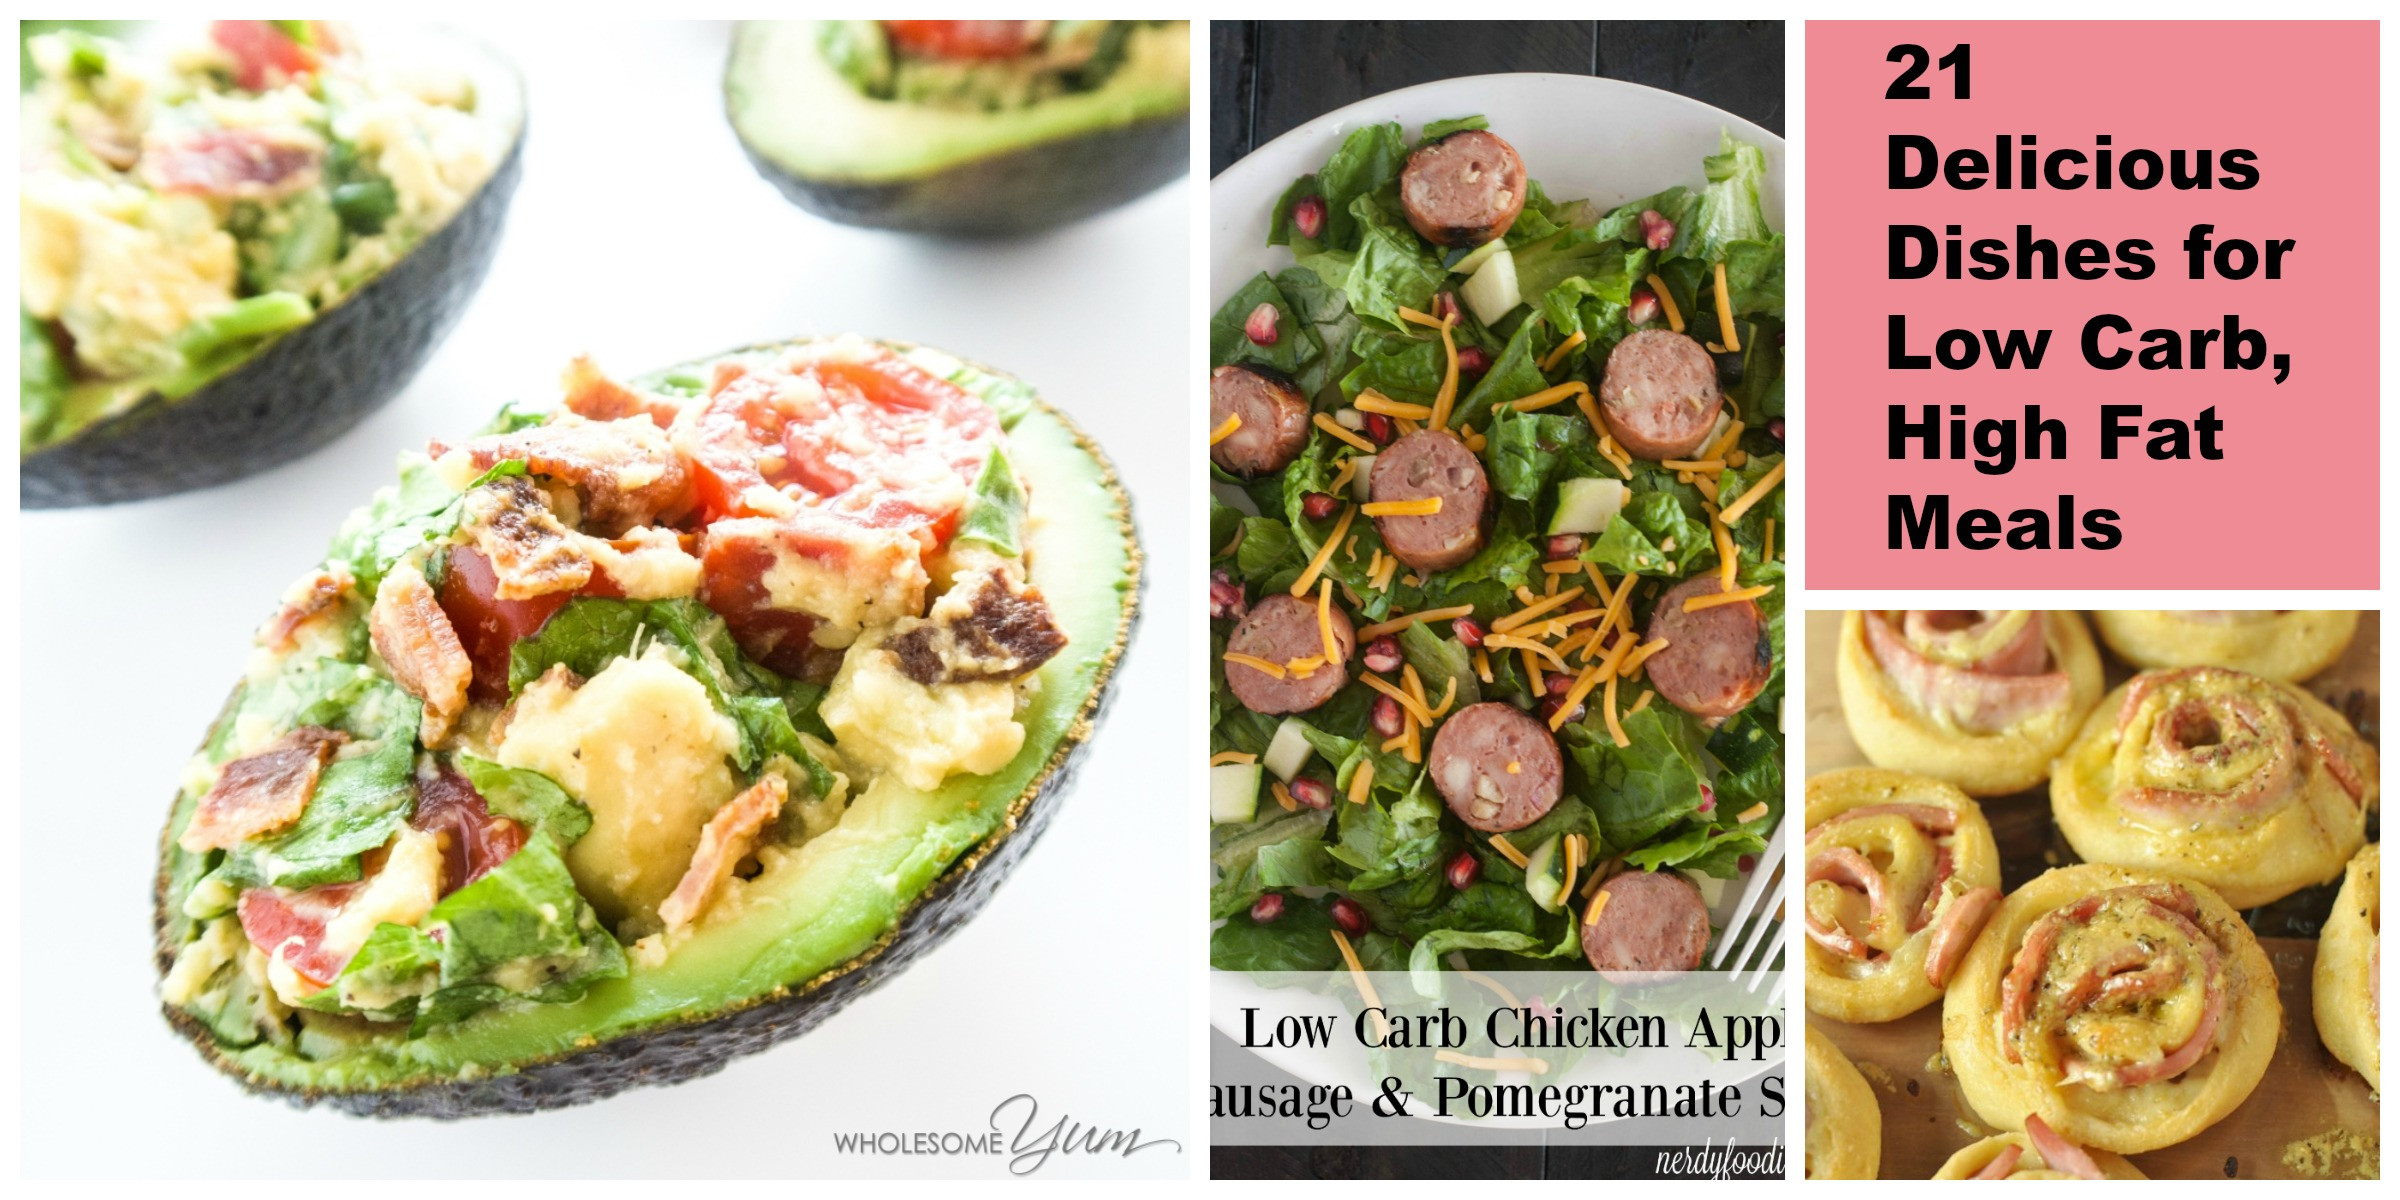 Low Carb High Fat Diet Recipes  Low Carb High Fat Recipe Round Up Purposeful Nutrition